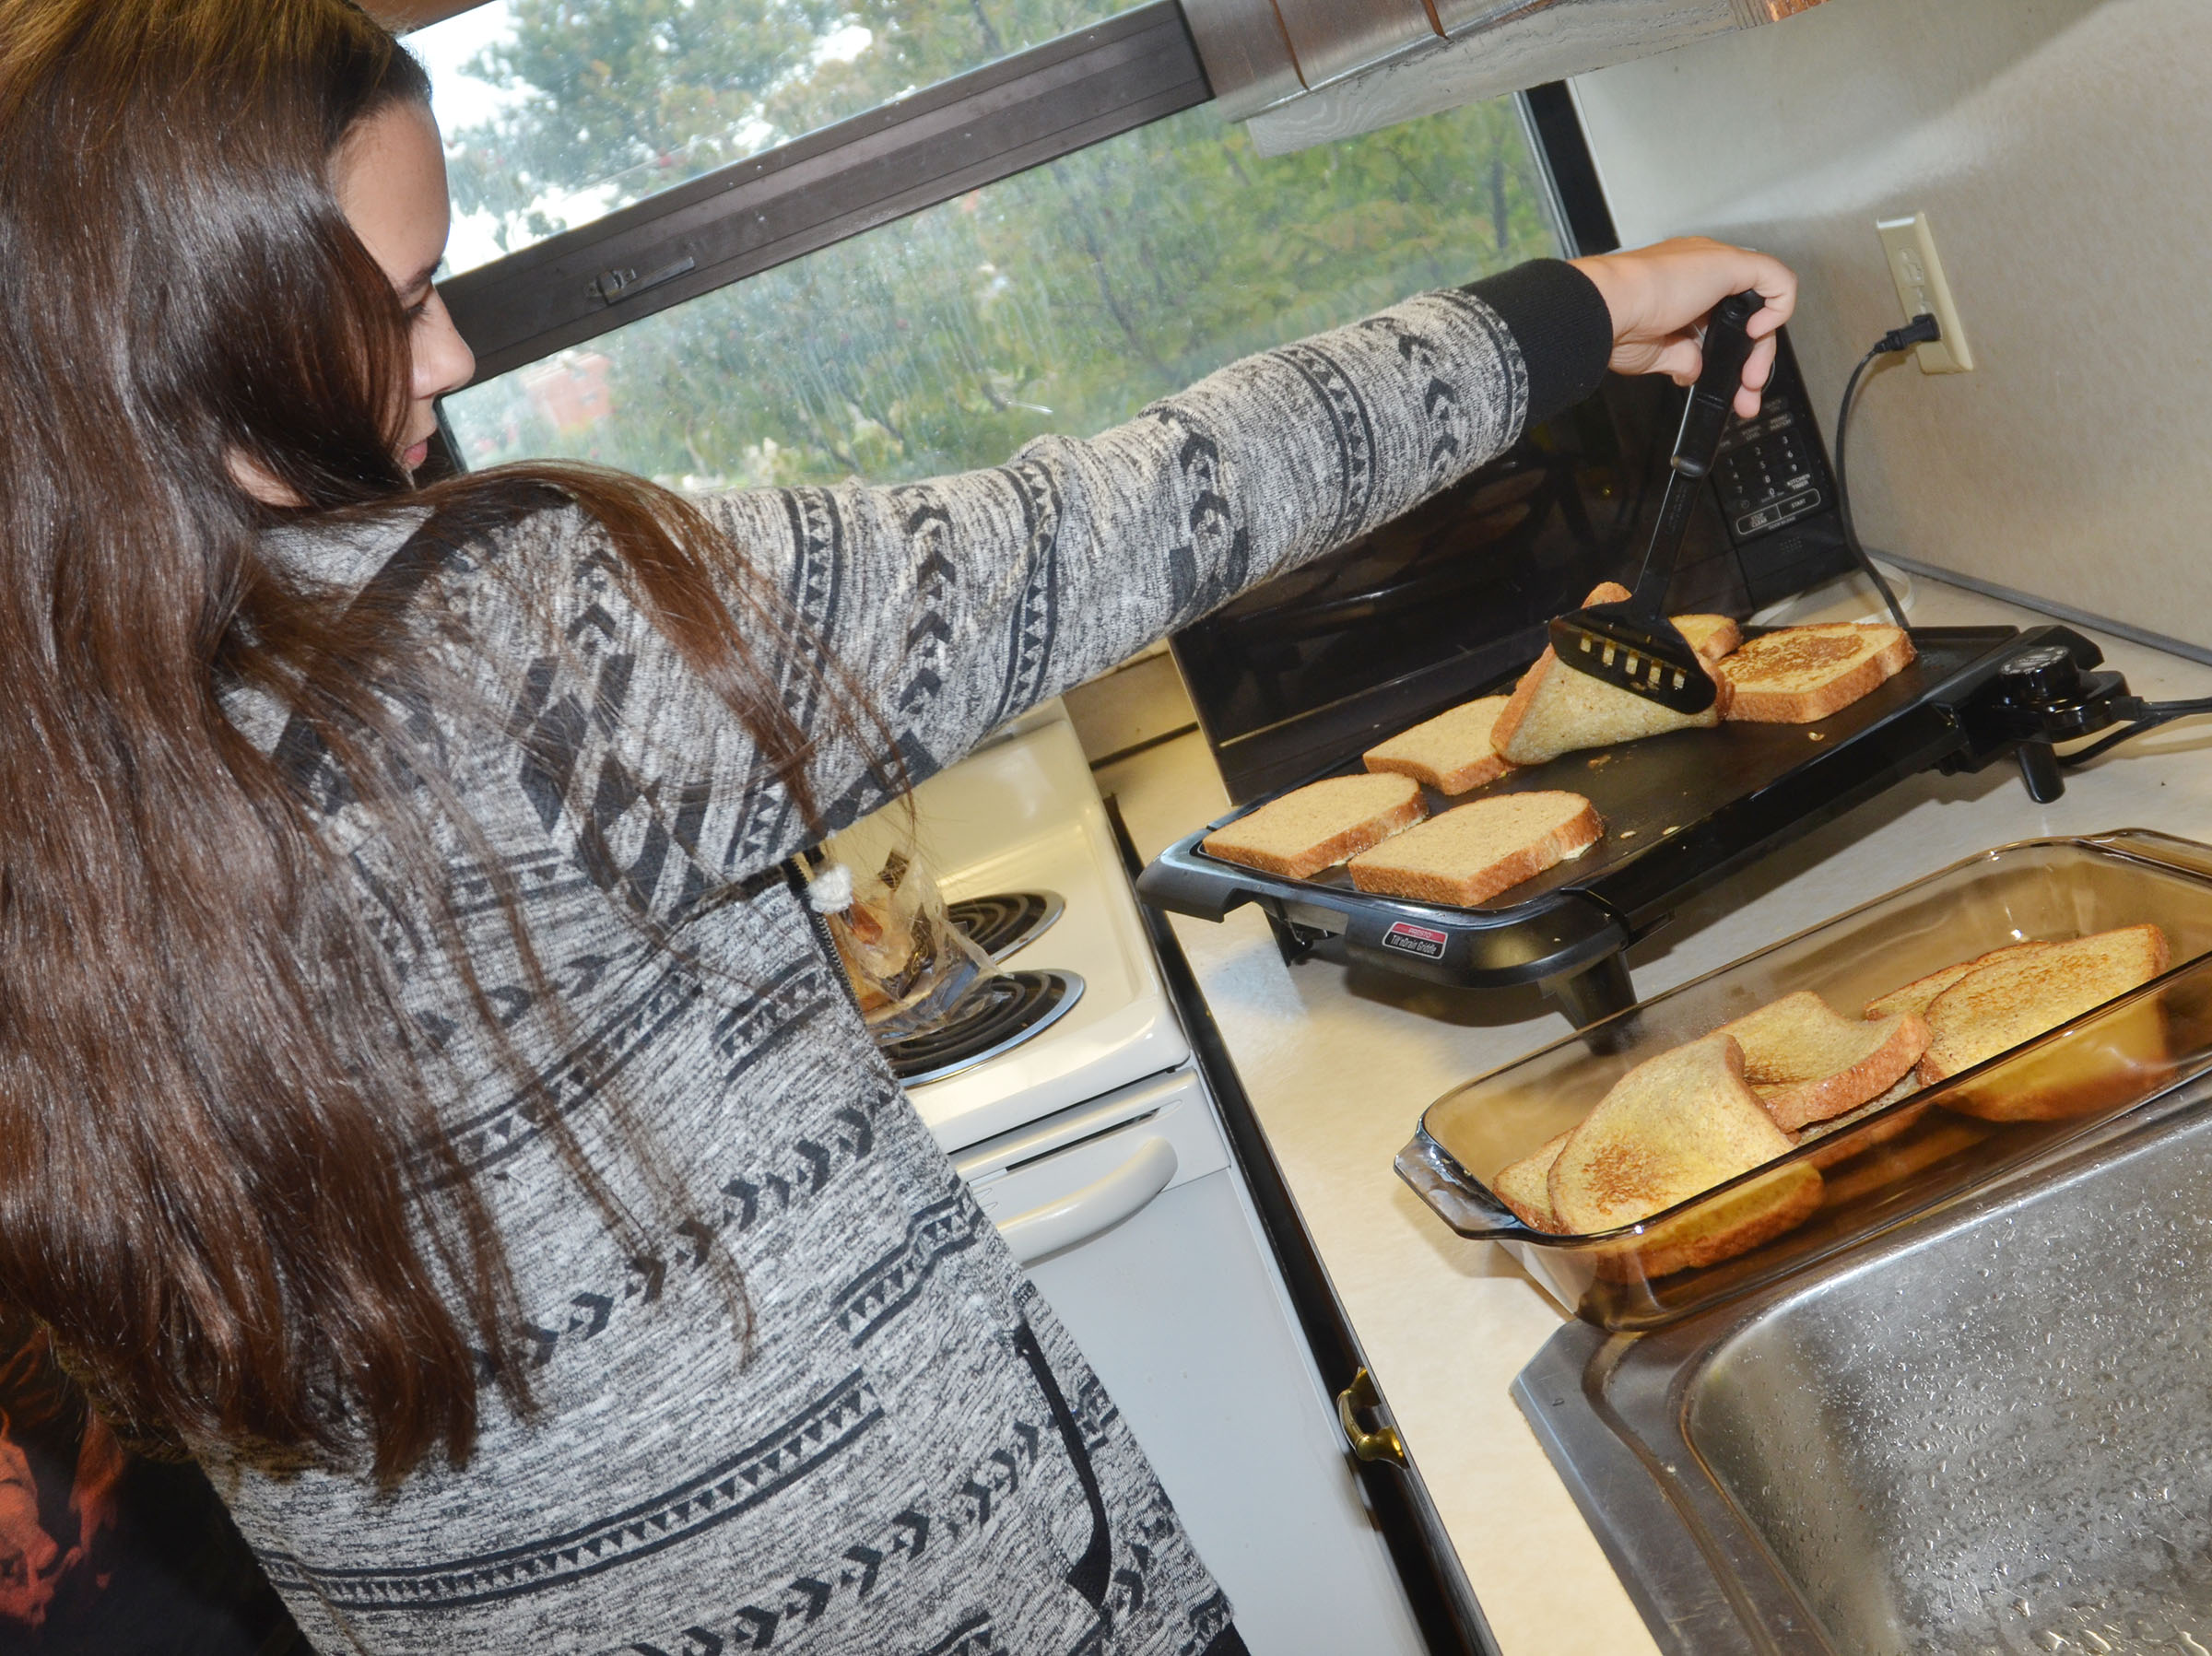 CHS junior Makala Antle flips the French toast.